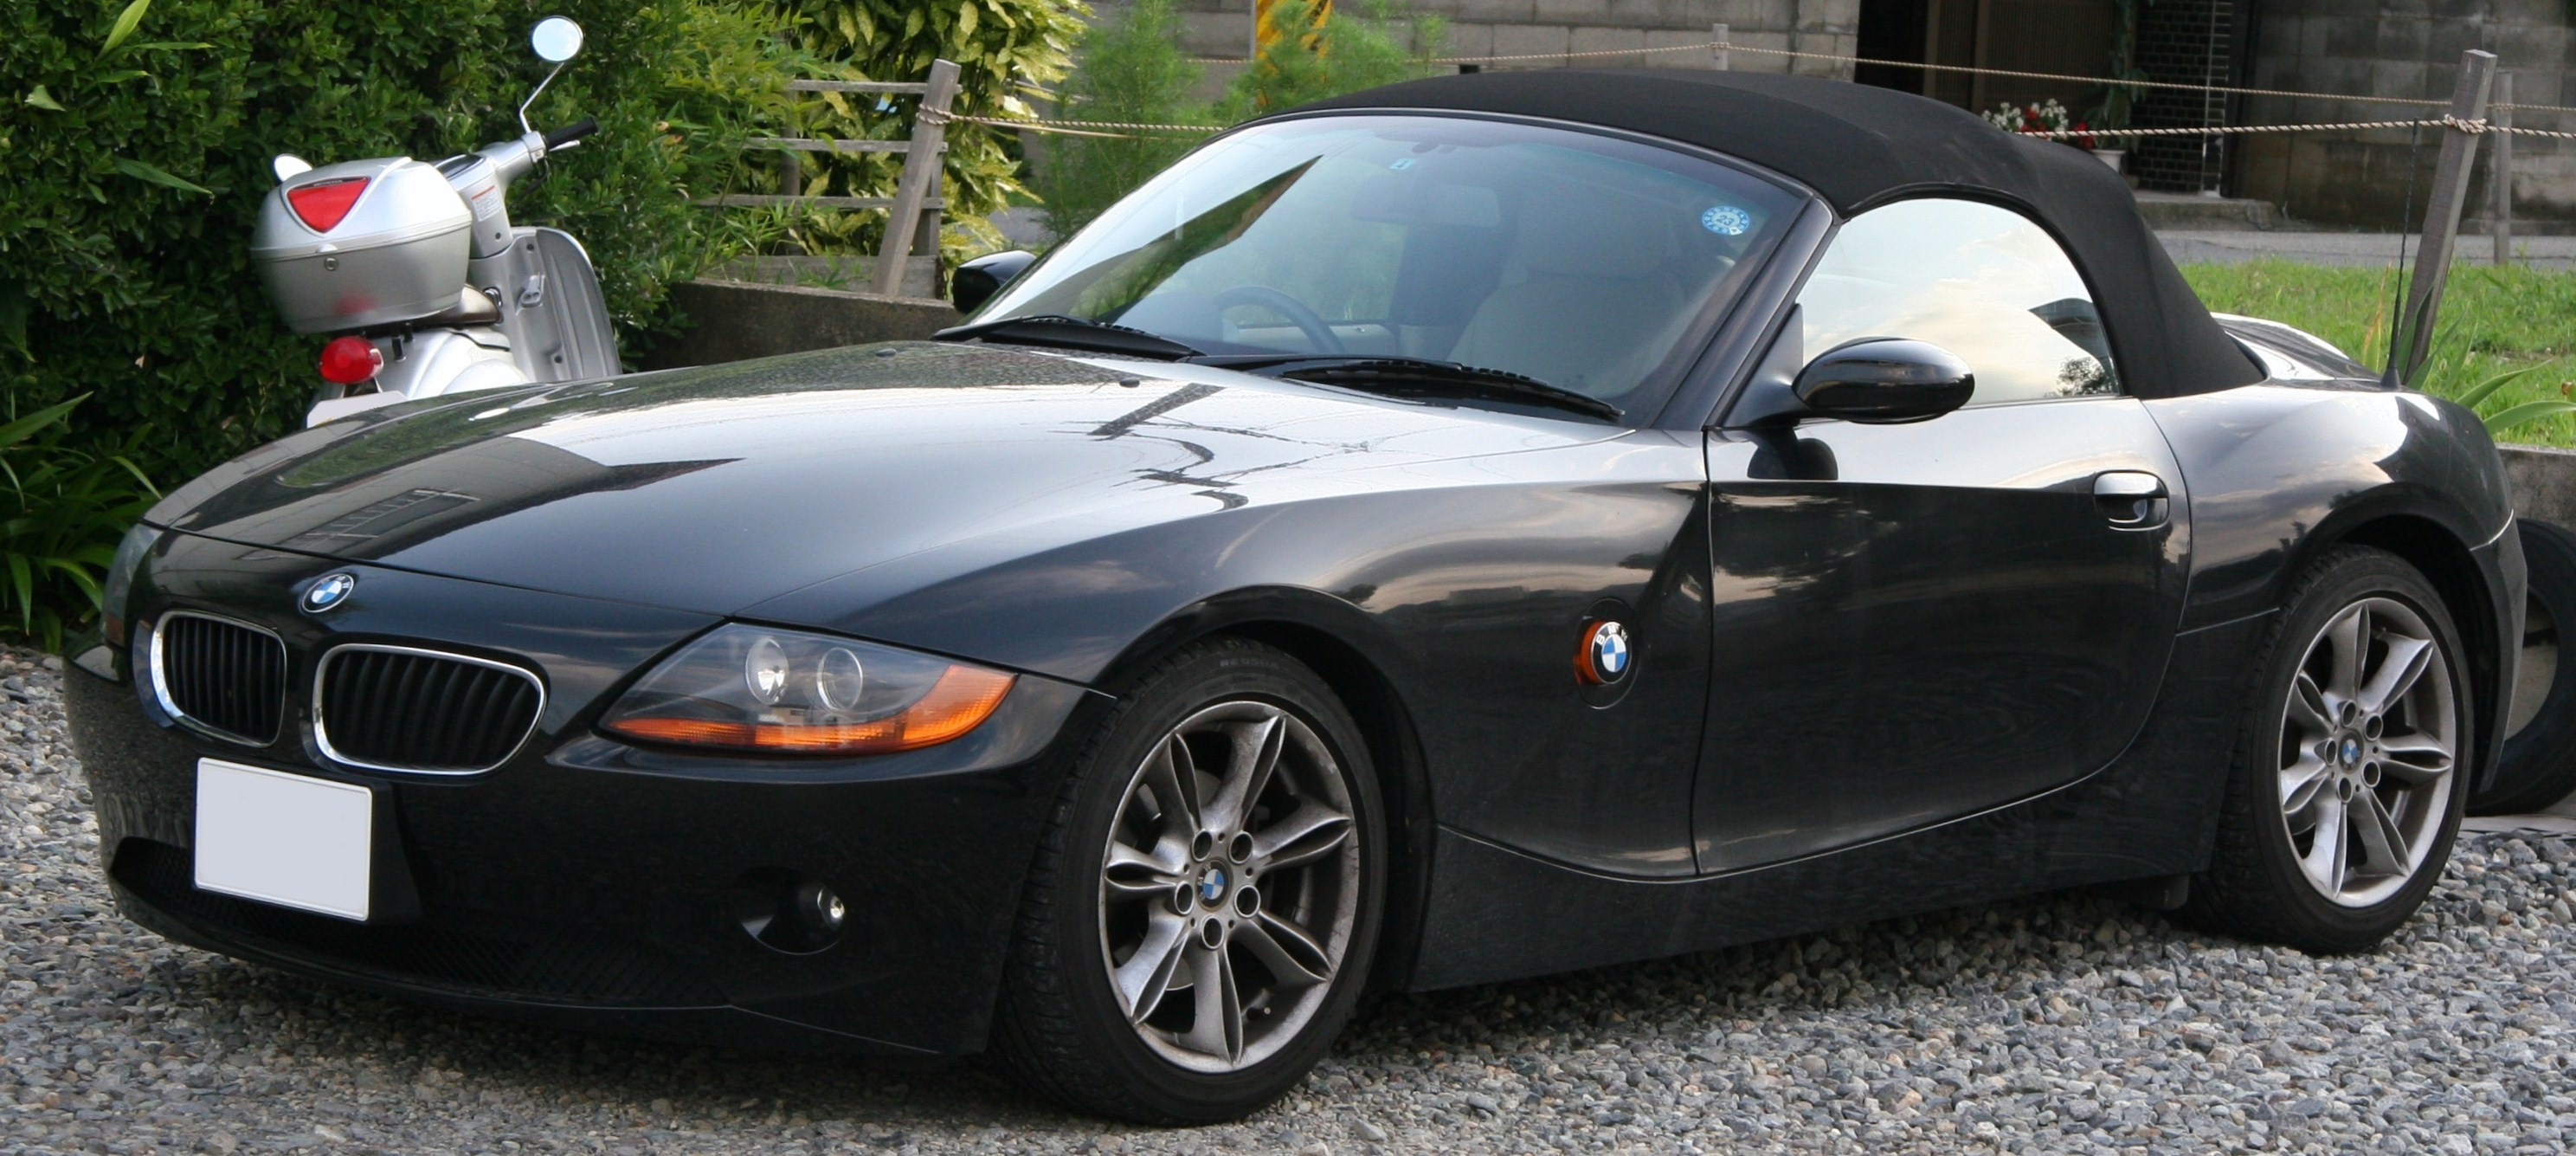 File:2003-2006 BMW Z4 Roadster.jpg - Wikimedia Commons